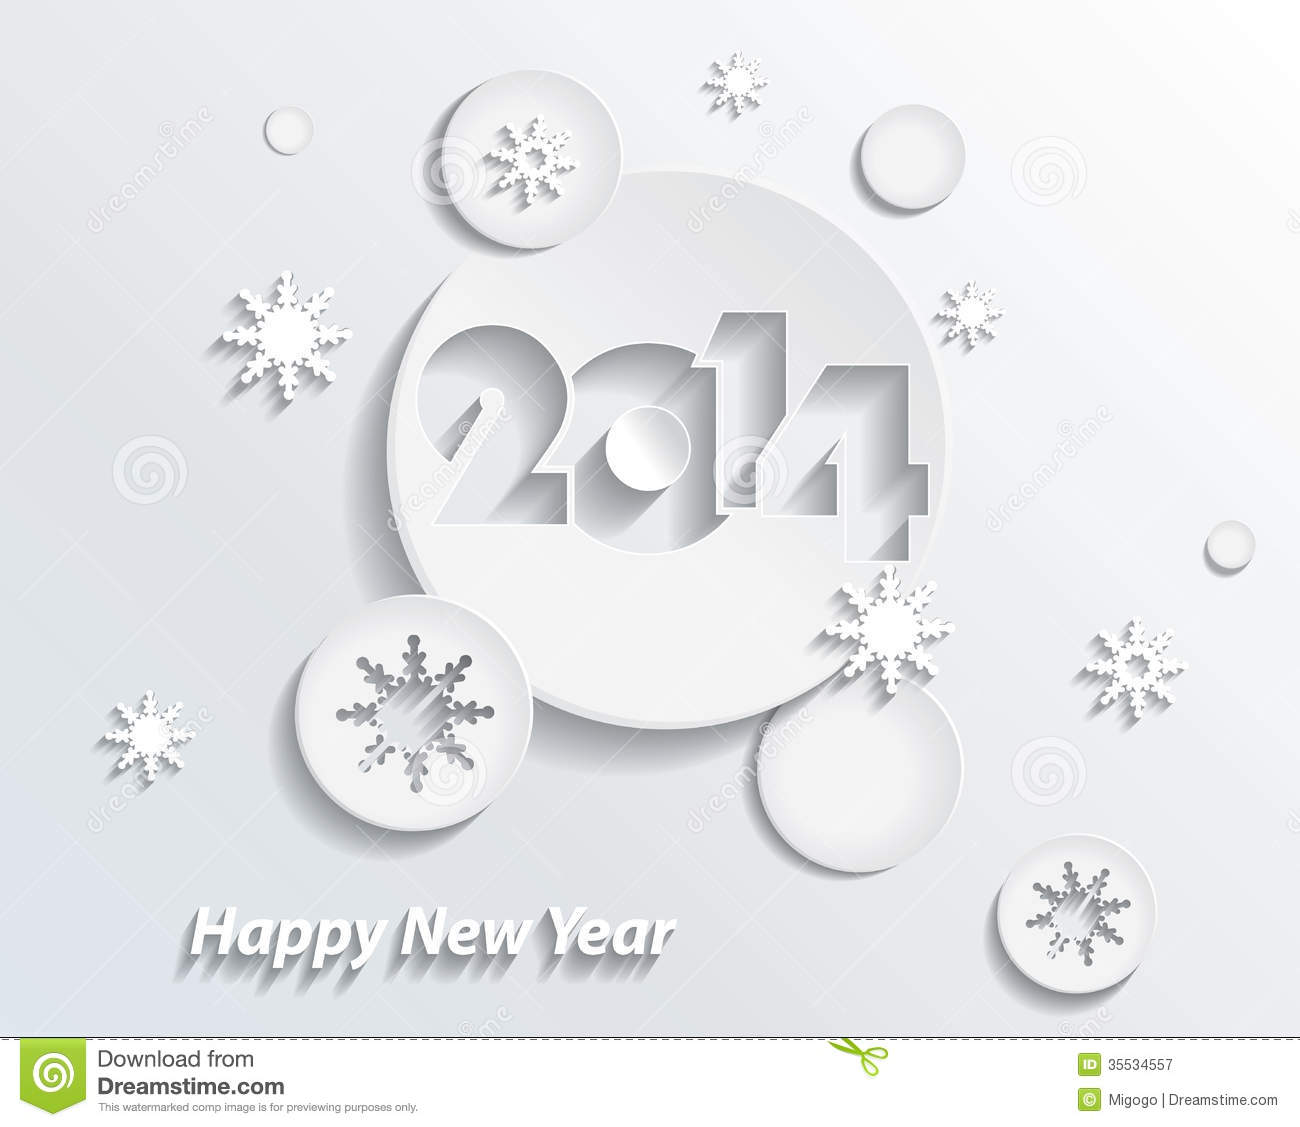 happy new year 2014 creative greeting card